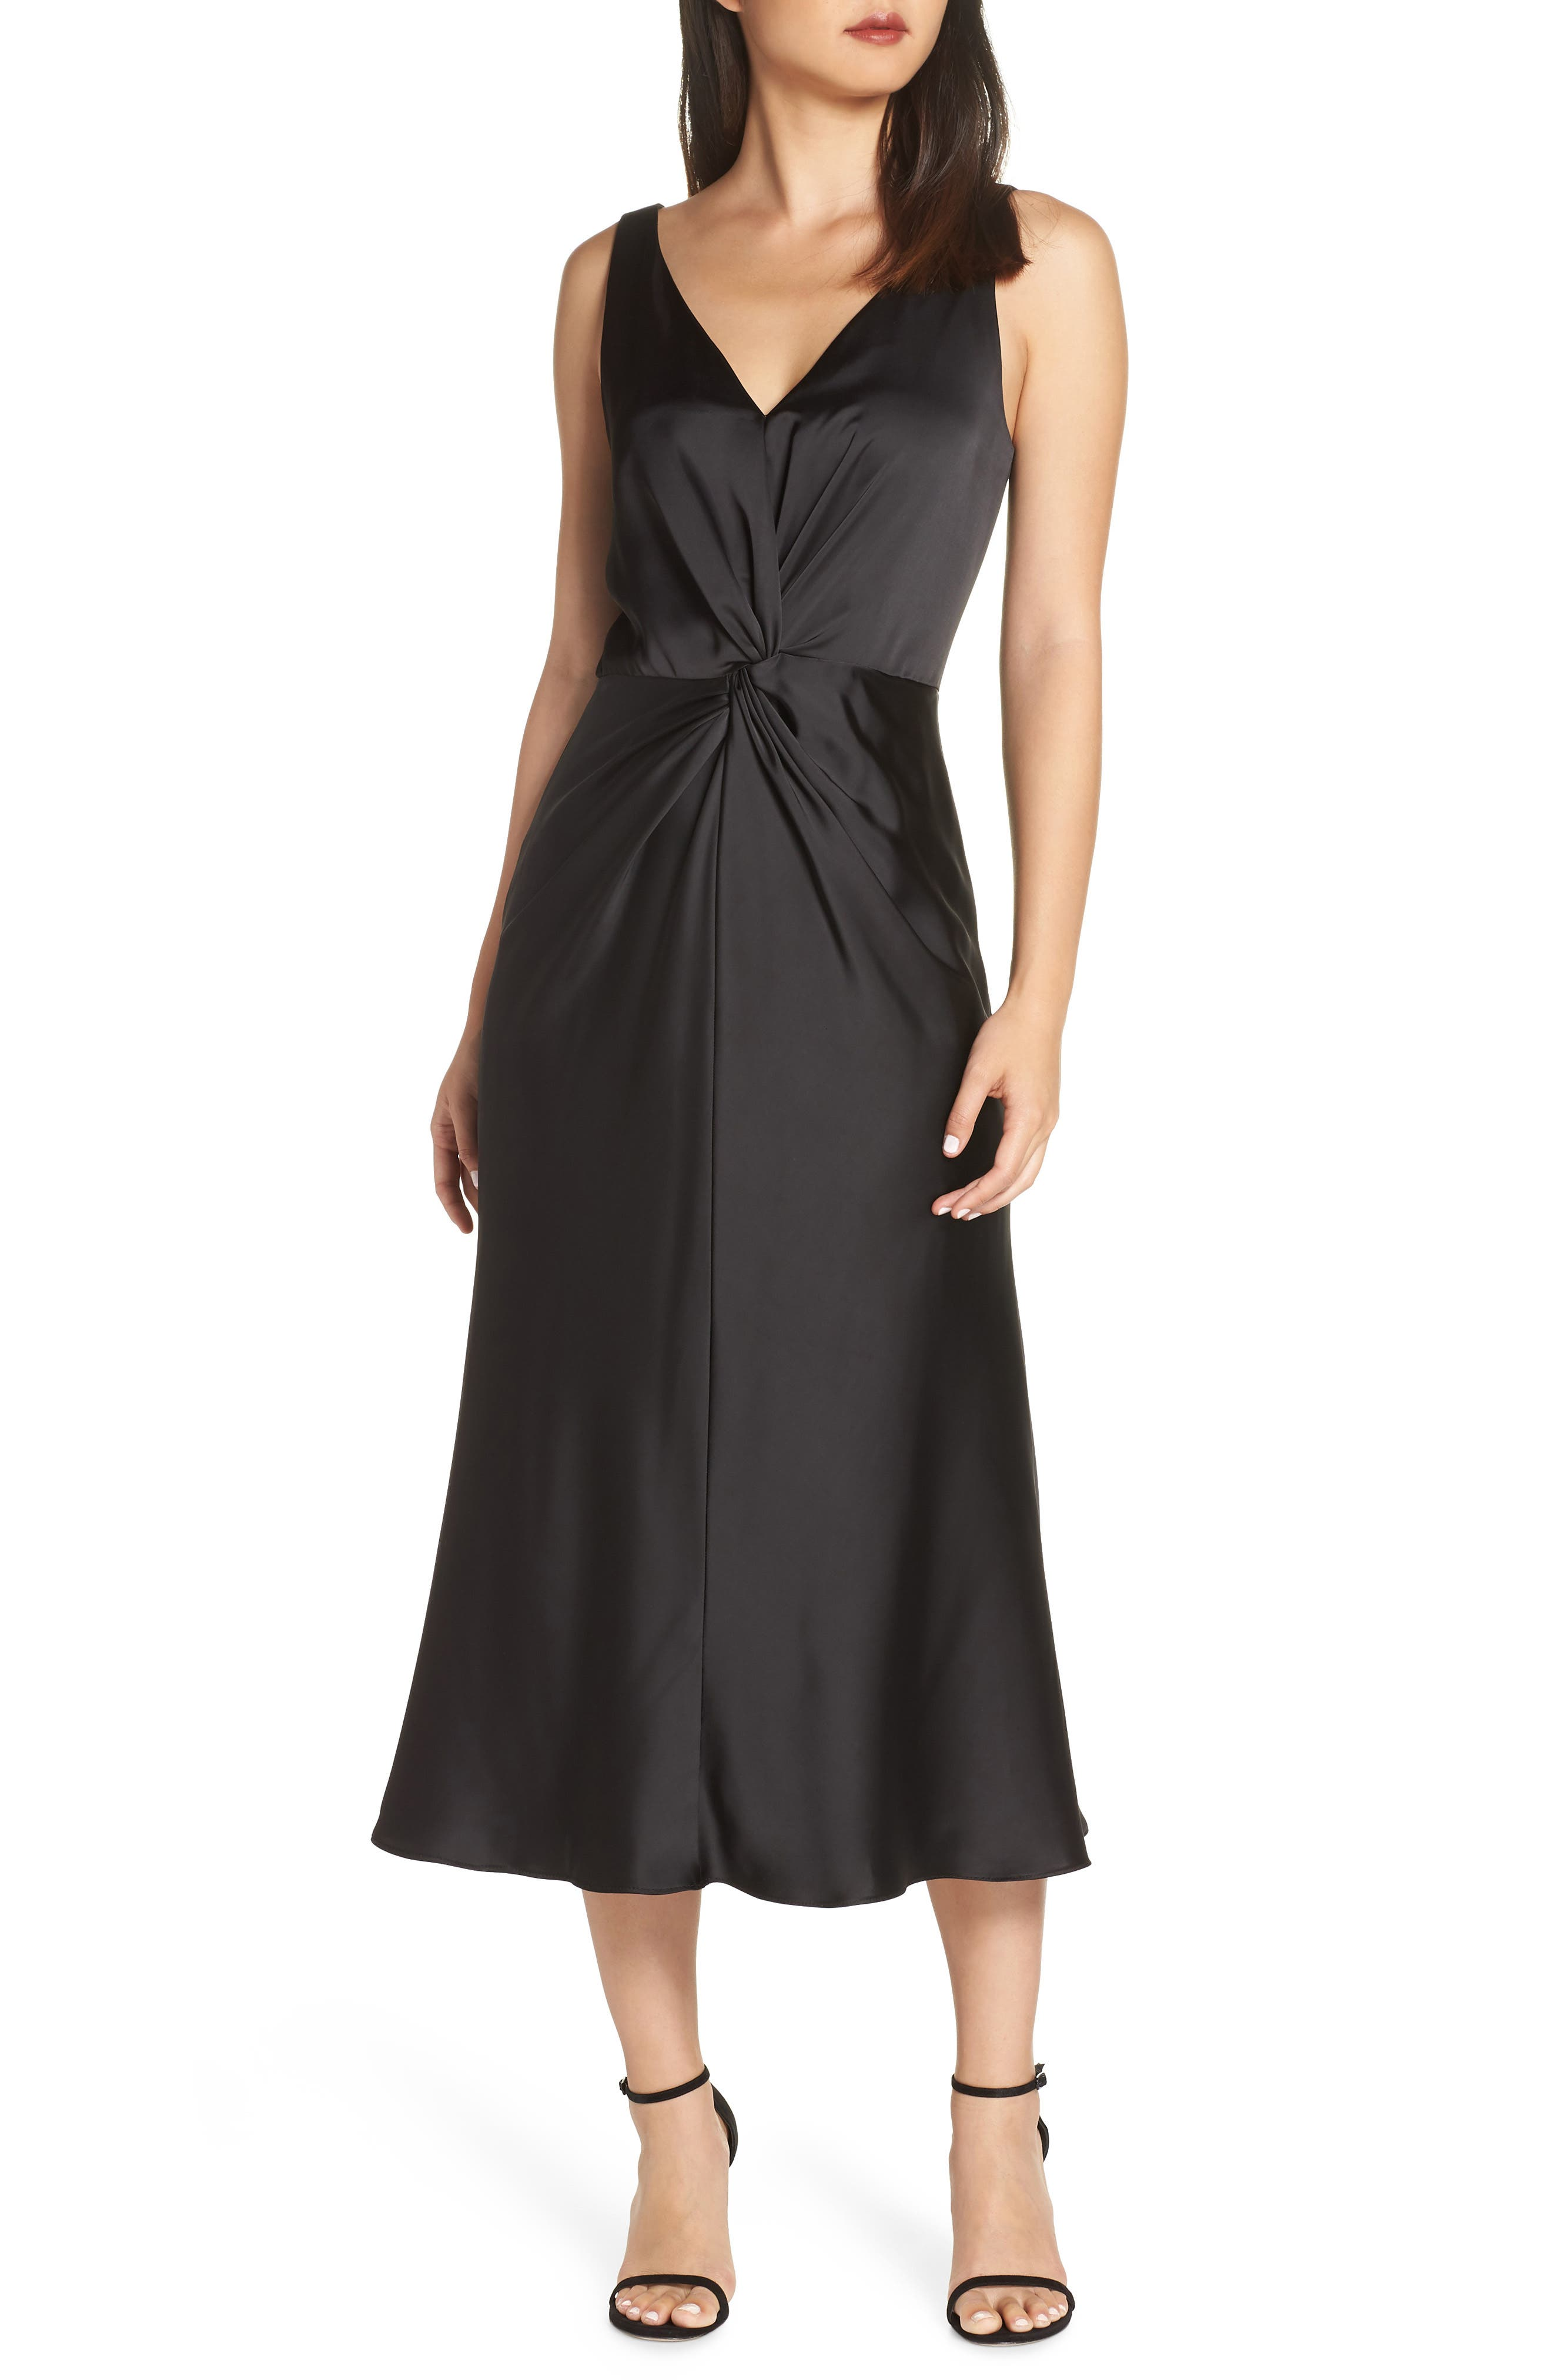 MAGGY LONDON Knot Front Satin Dress in Black